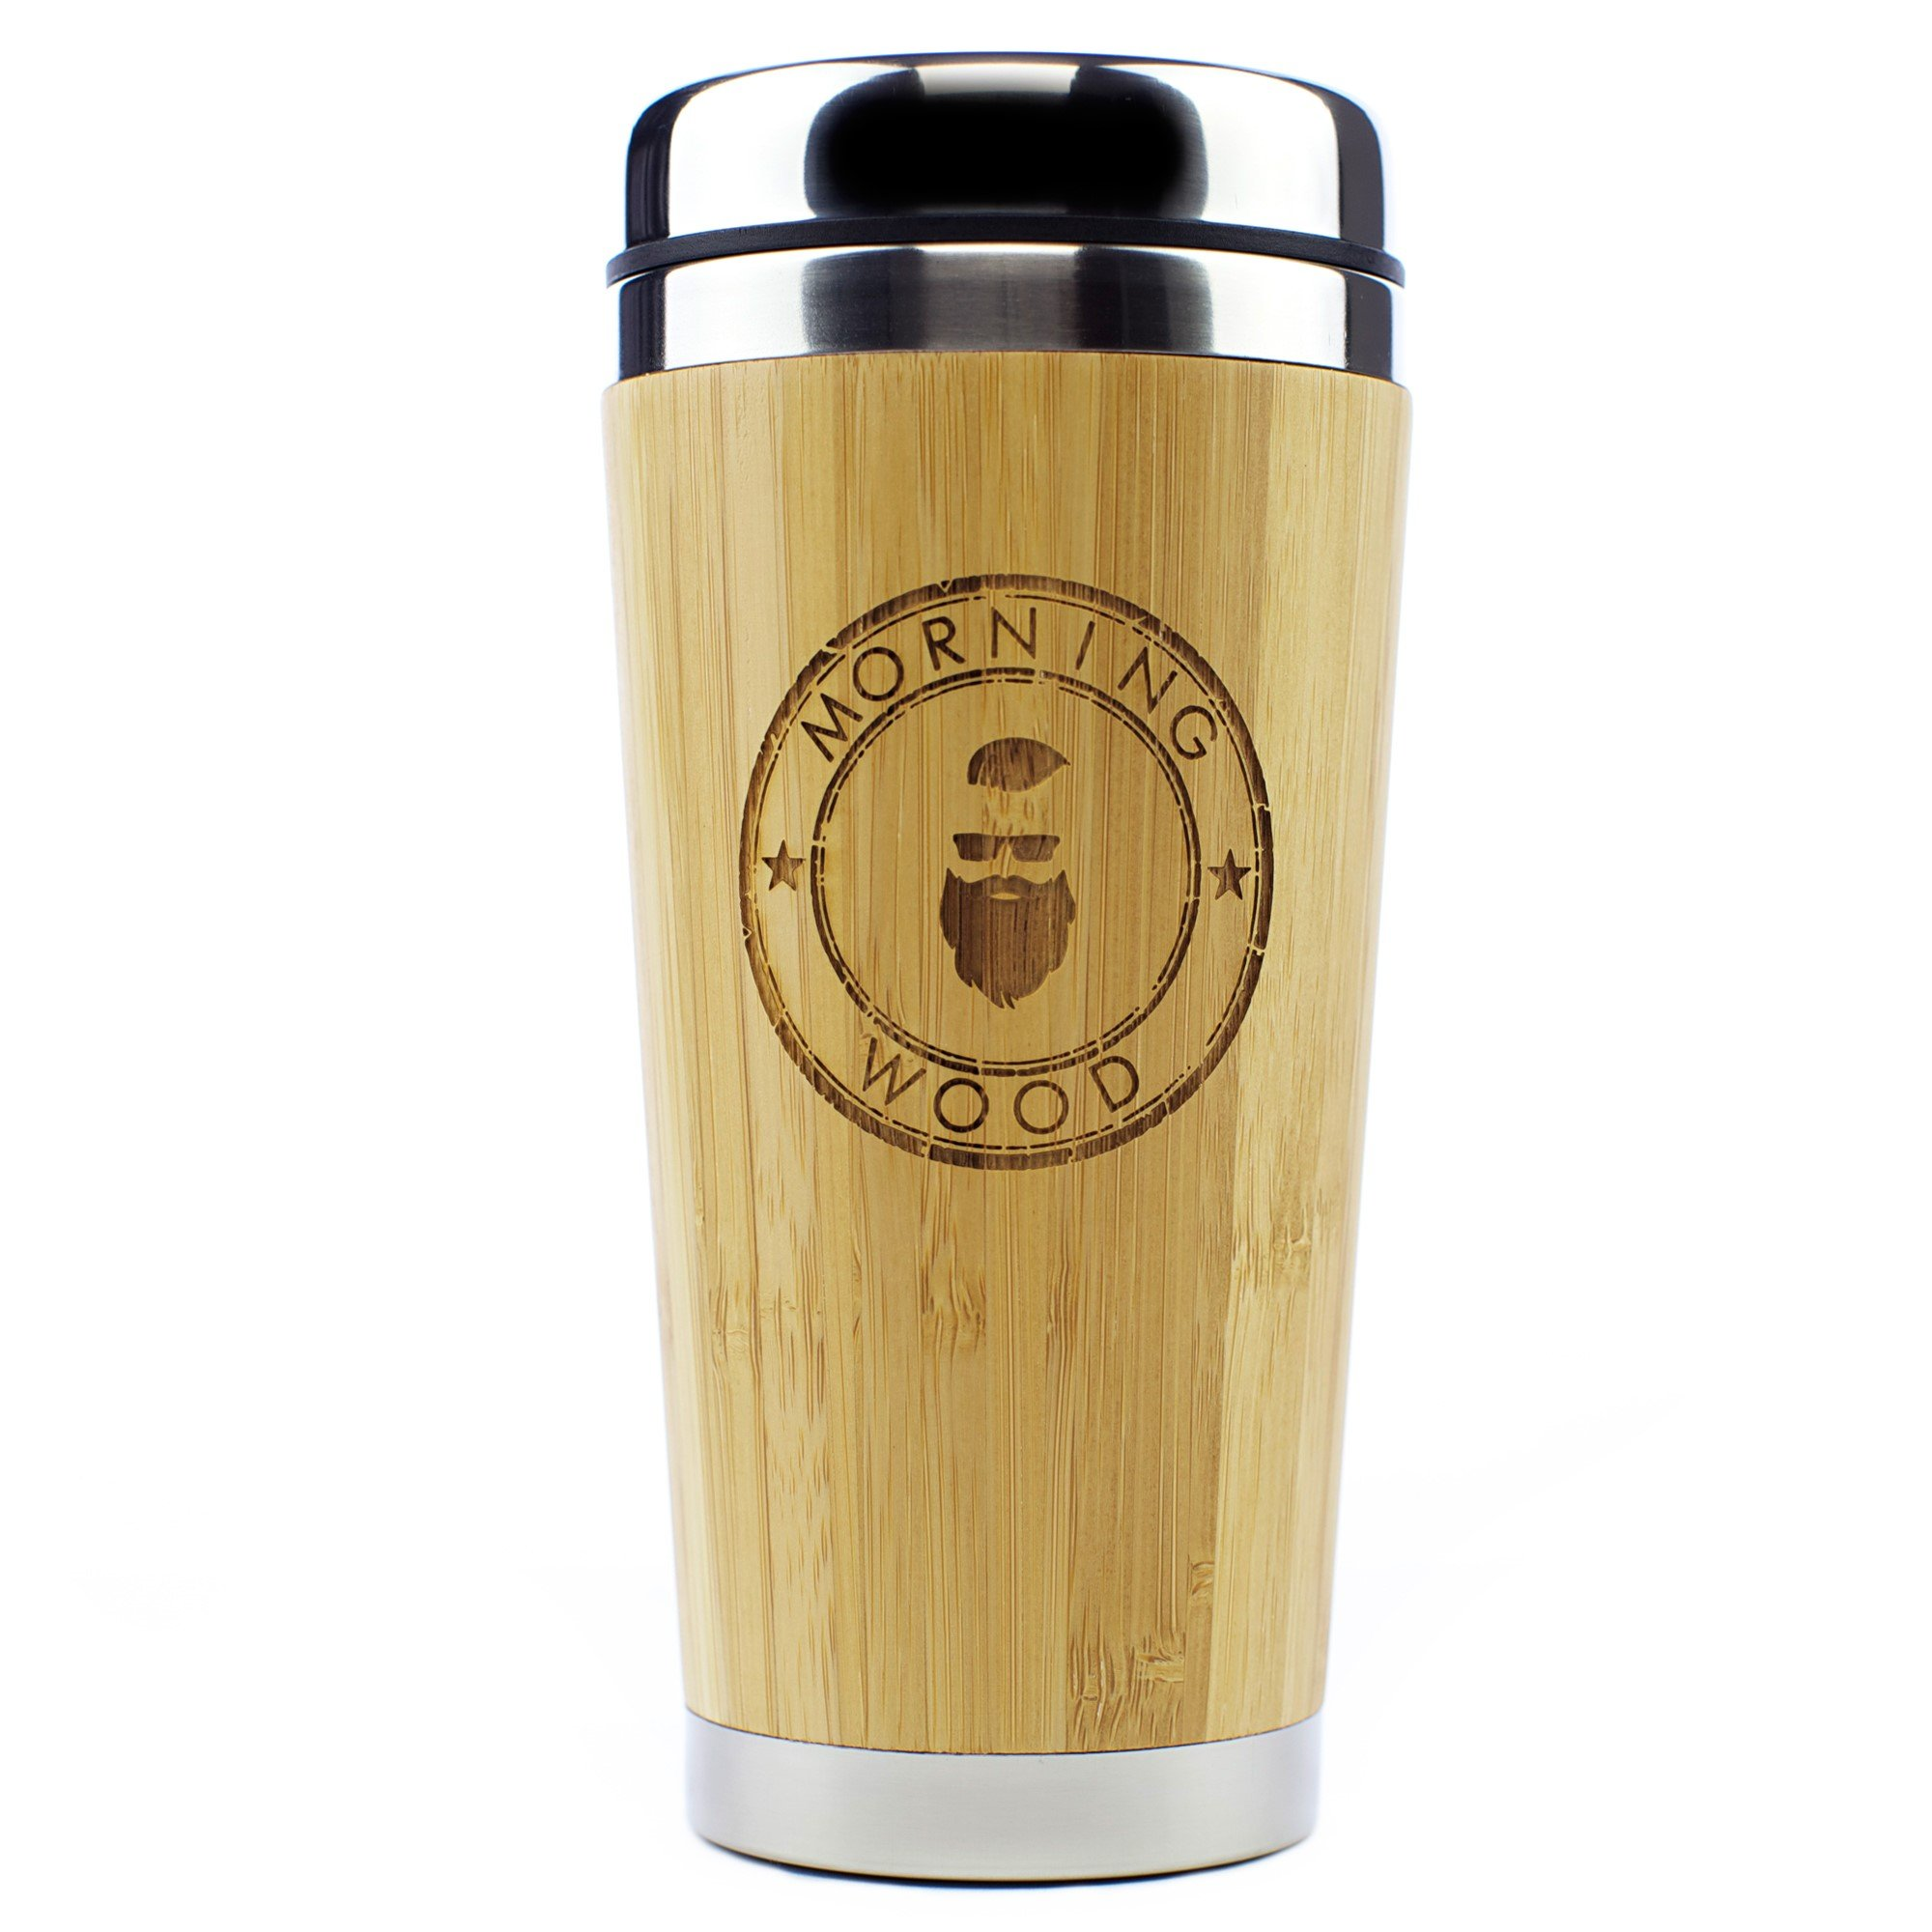 Morning Wood Premium Bamboo Travel Coffee Mug, Coffee Cup Thermos with QuickSeal Lid, Stainless Steel Insulated Tumbler 16oz.